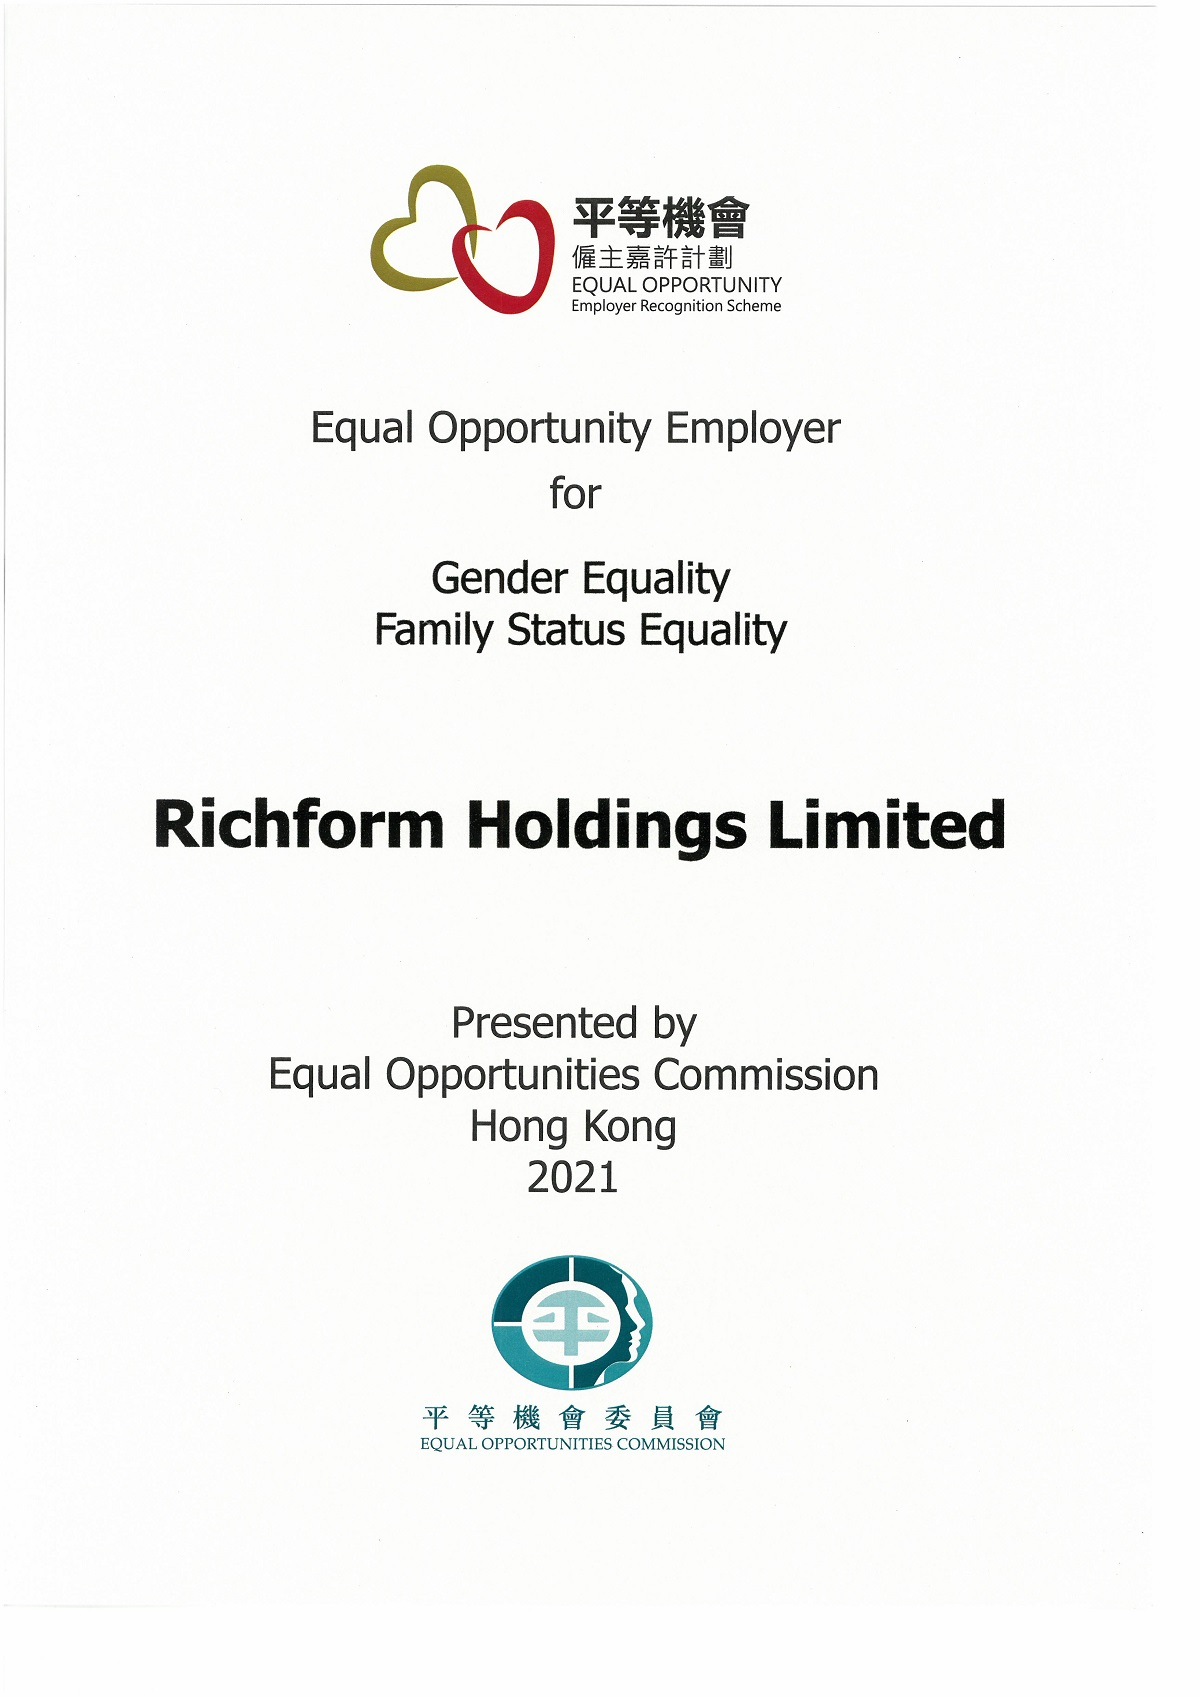 Equal Opportunity Employer award